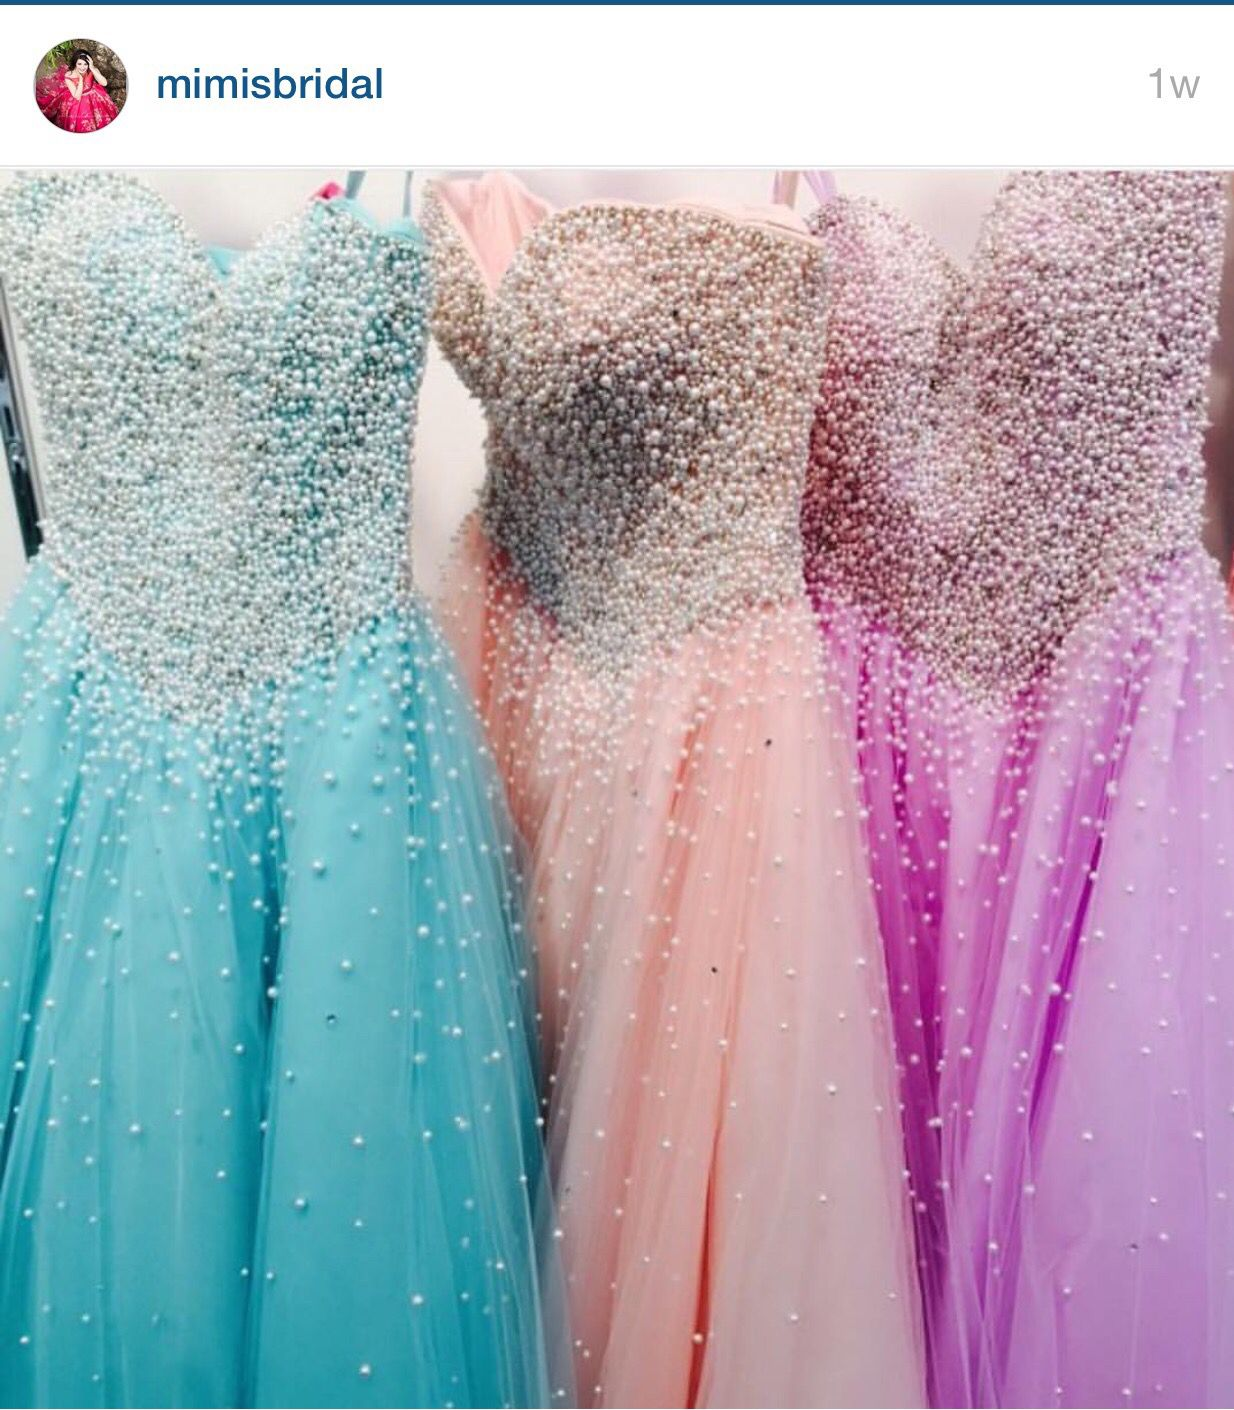 Pearls galore for prom prom promdress prompictures